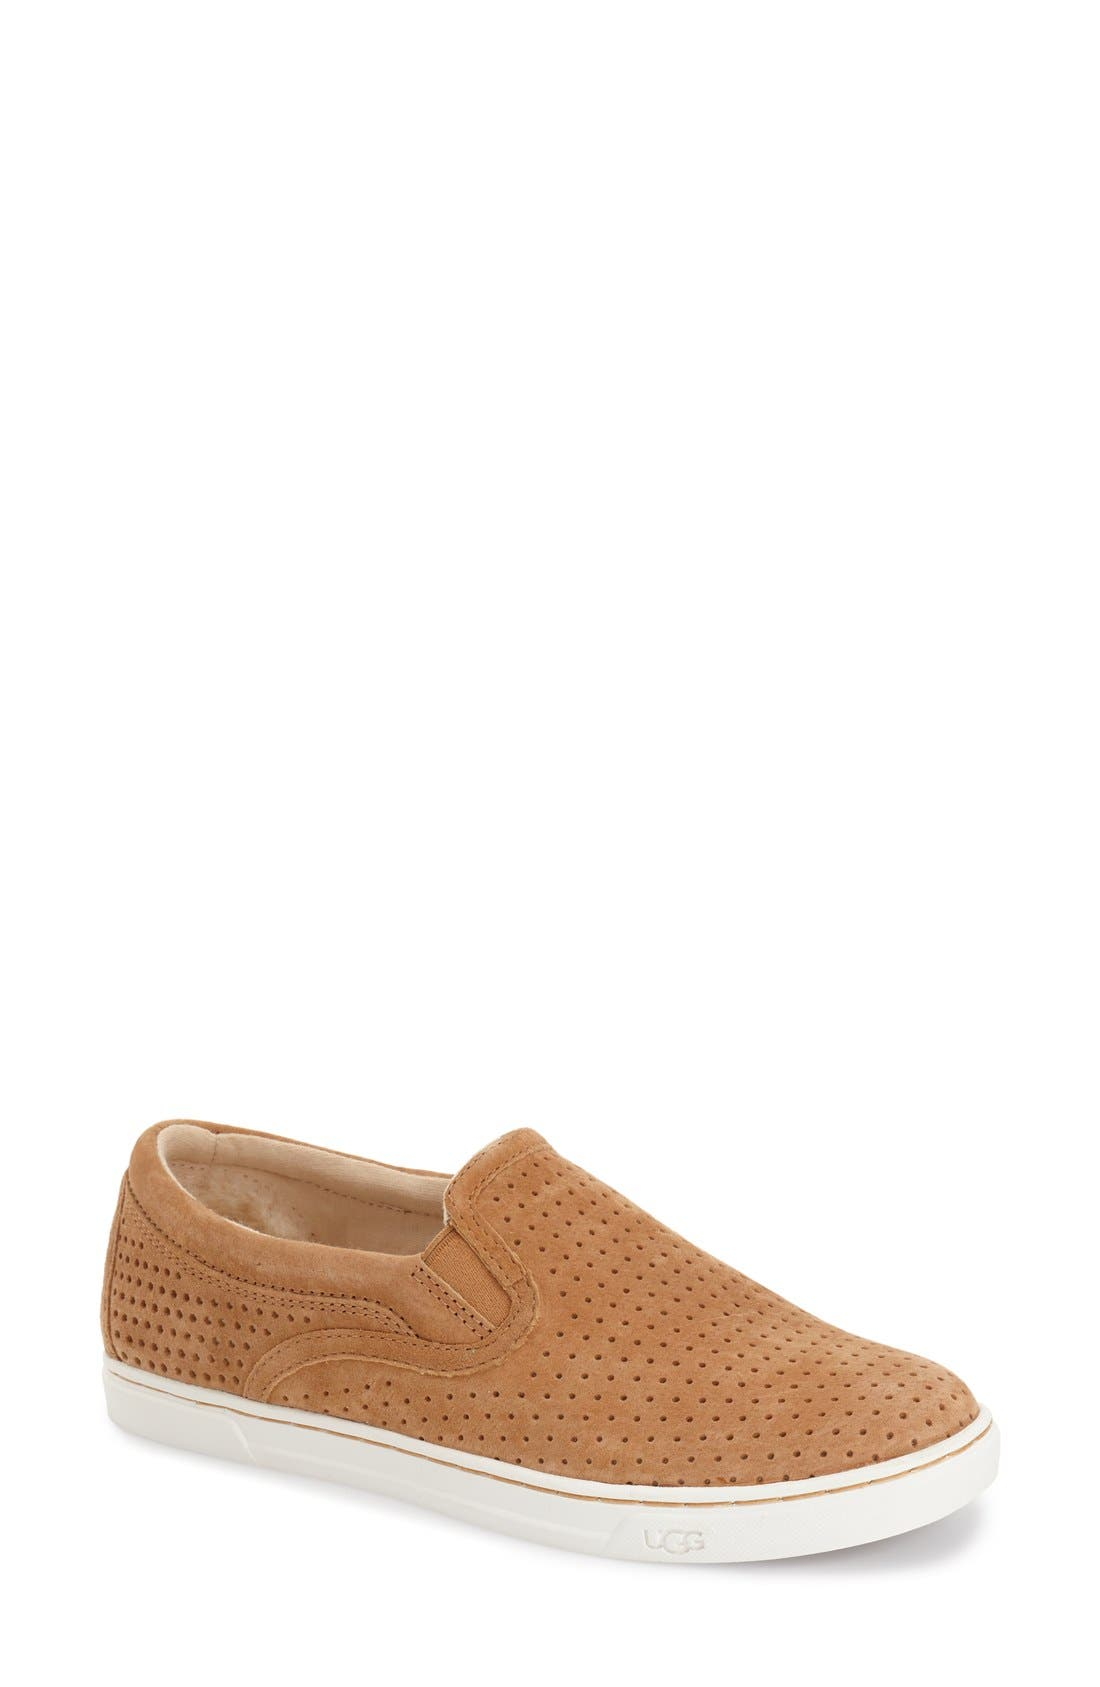 'Fierce Geo' Perforated Slip-On Sneaker,                             Main thumbnail 2, color,